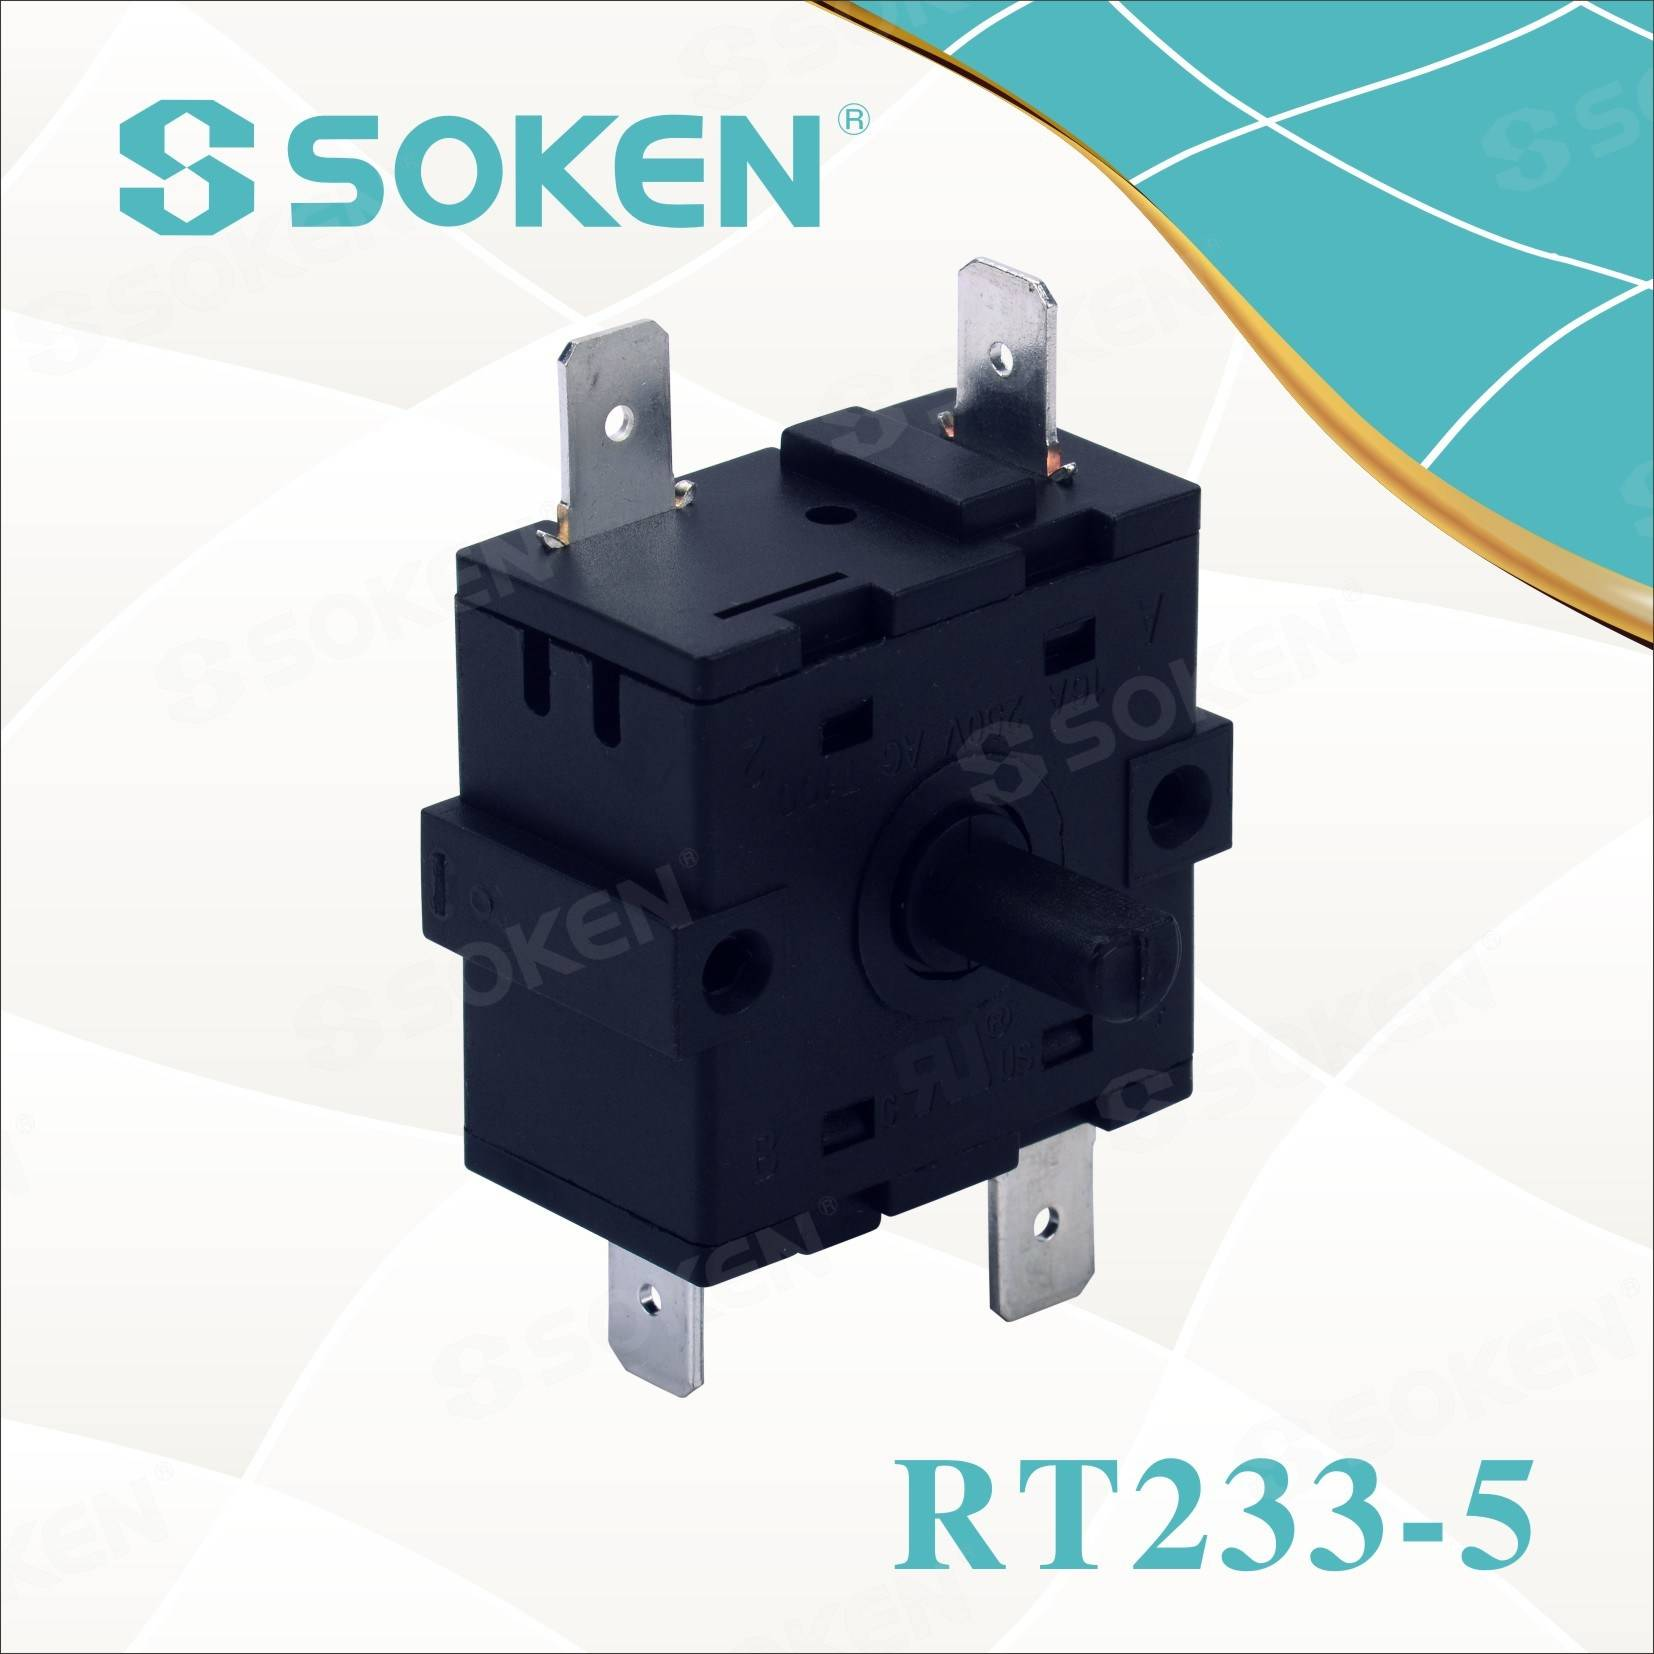 Soken Patio Heater Rotary Switch